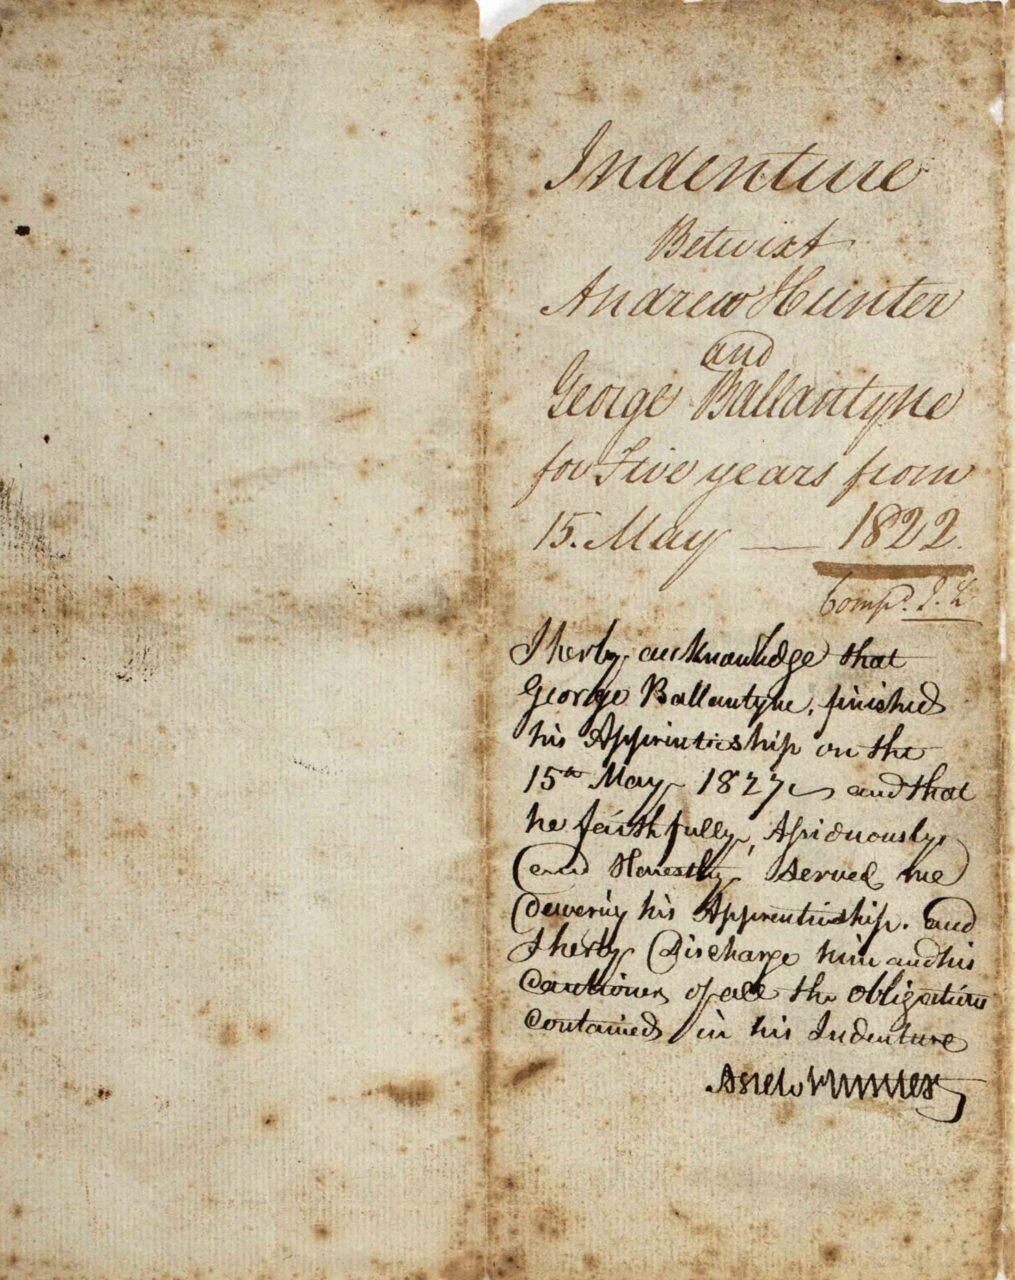 Indenture Andrew Hunter & George Ballantyne